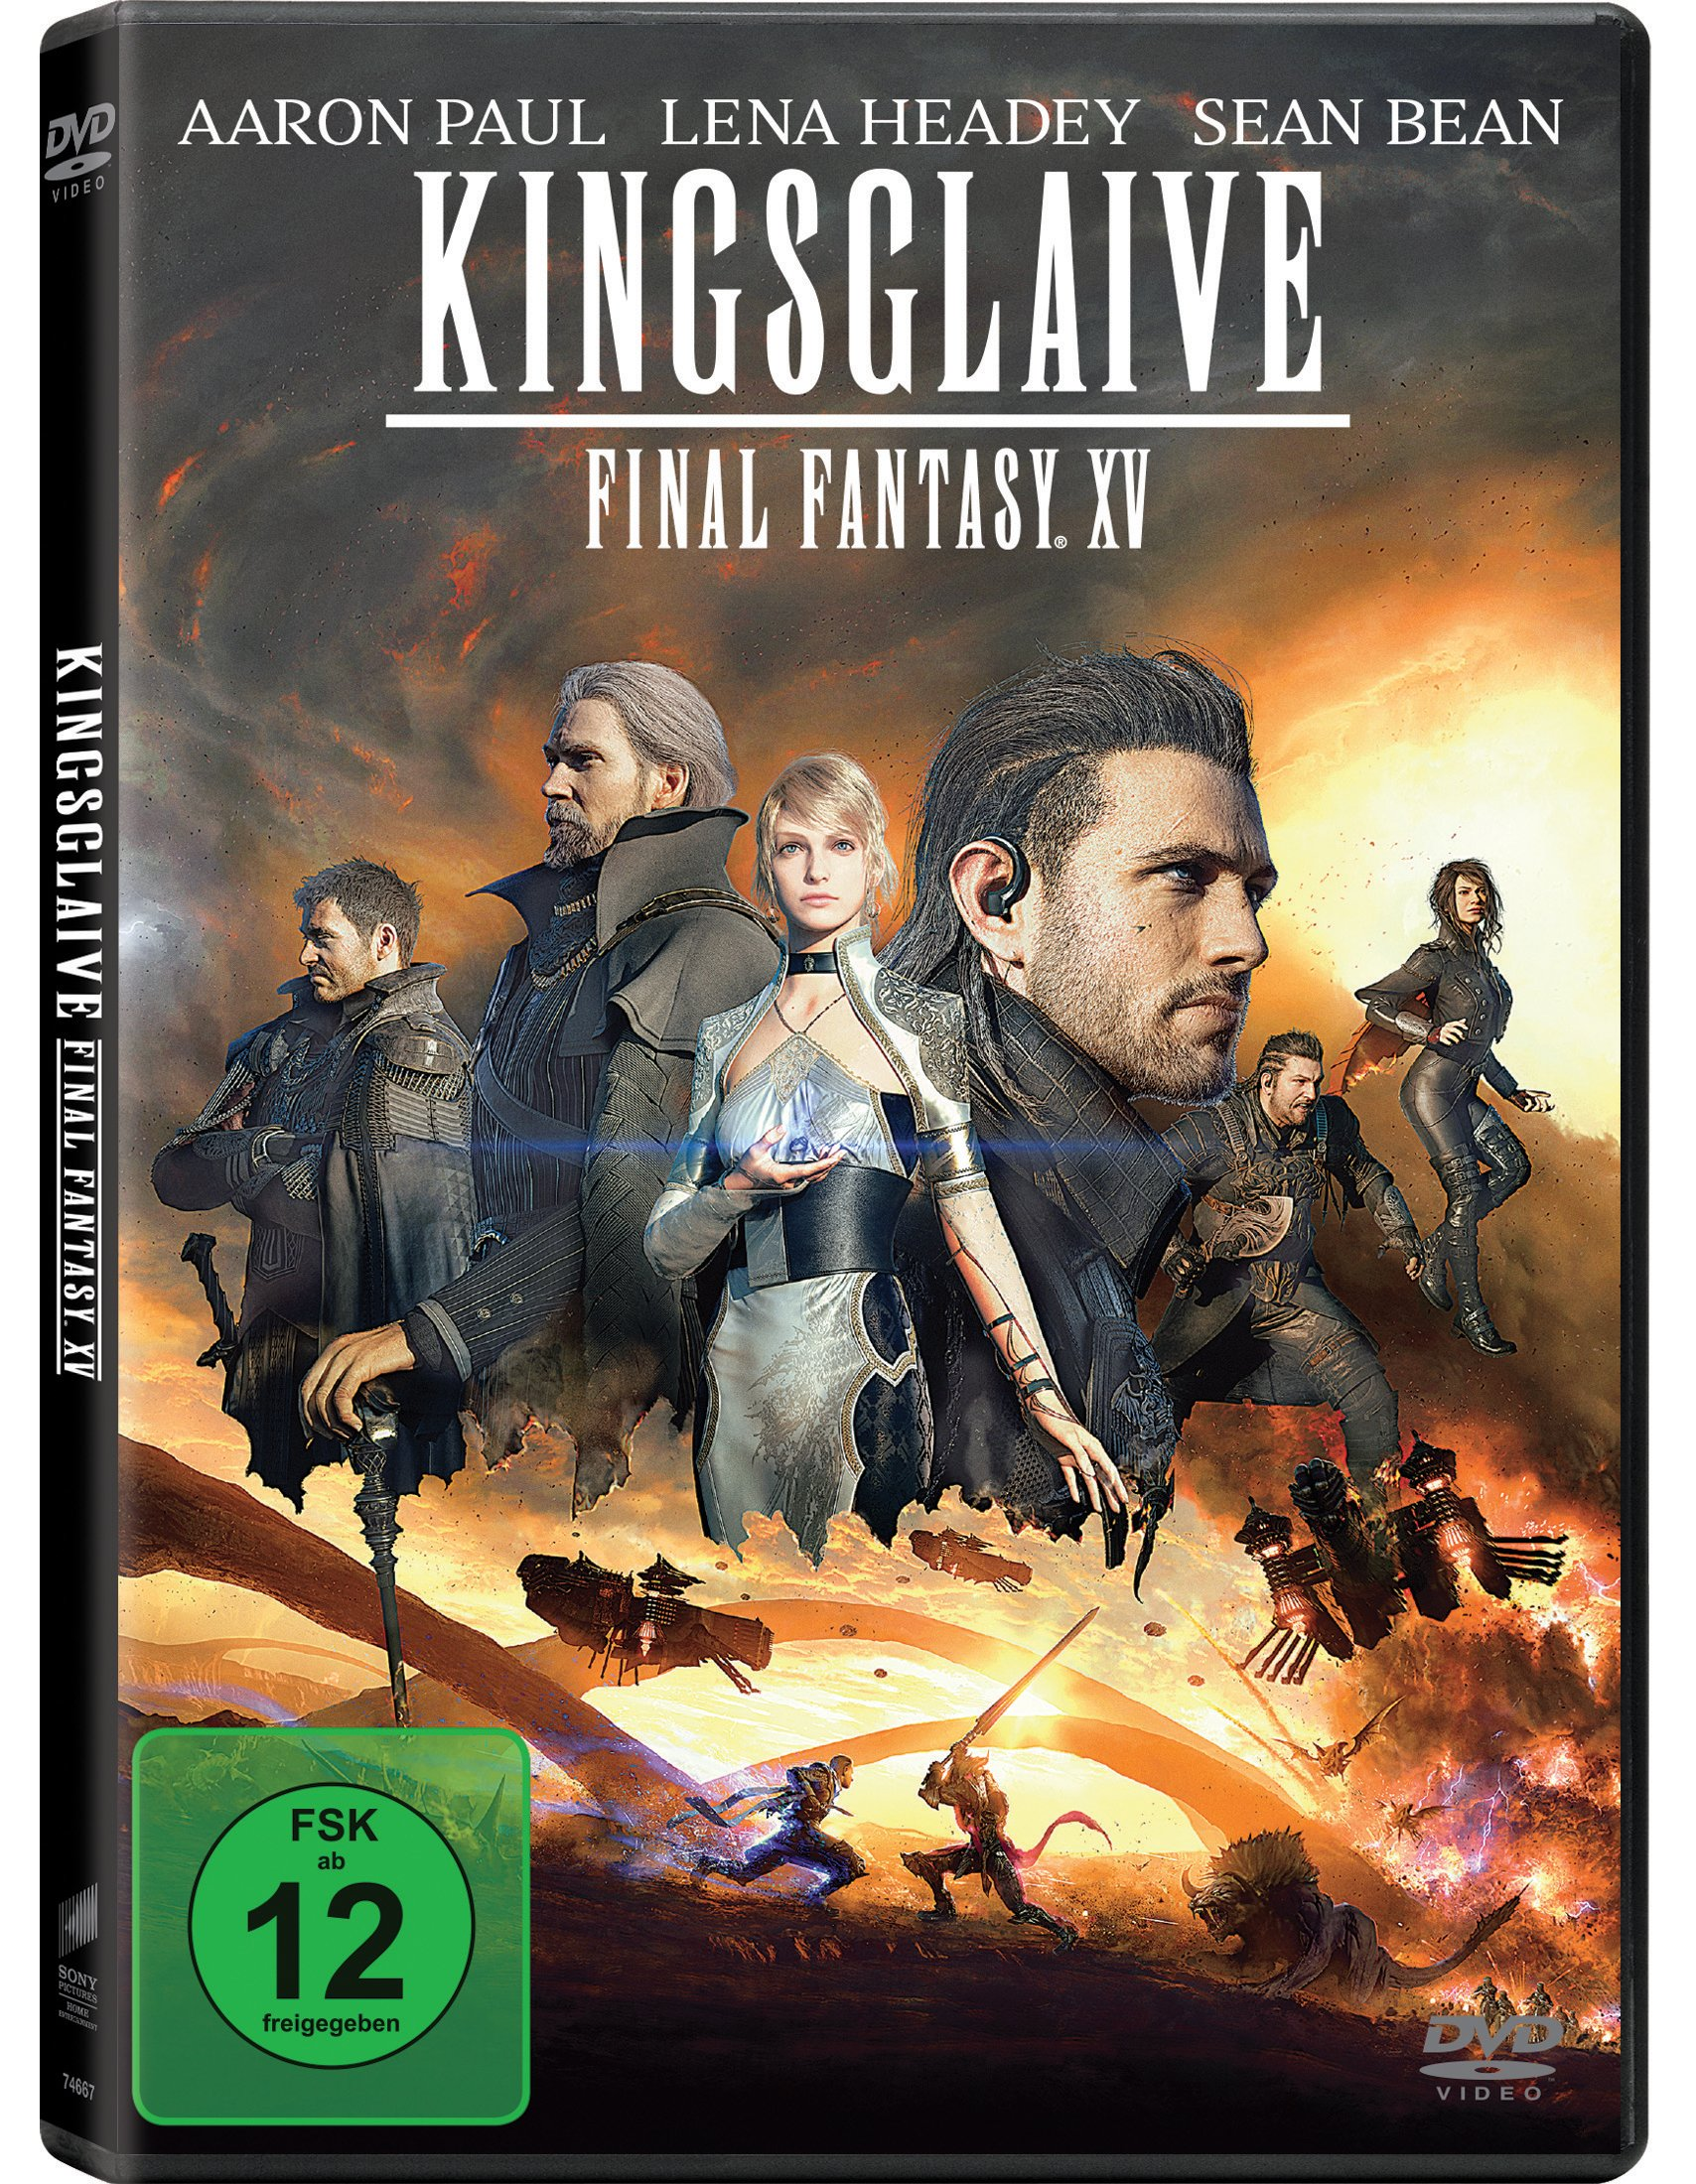 : Kingsglaive Final Fantasy Xv German Ac3 Webrip x264-PsO